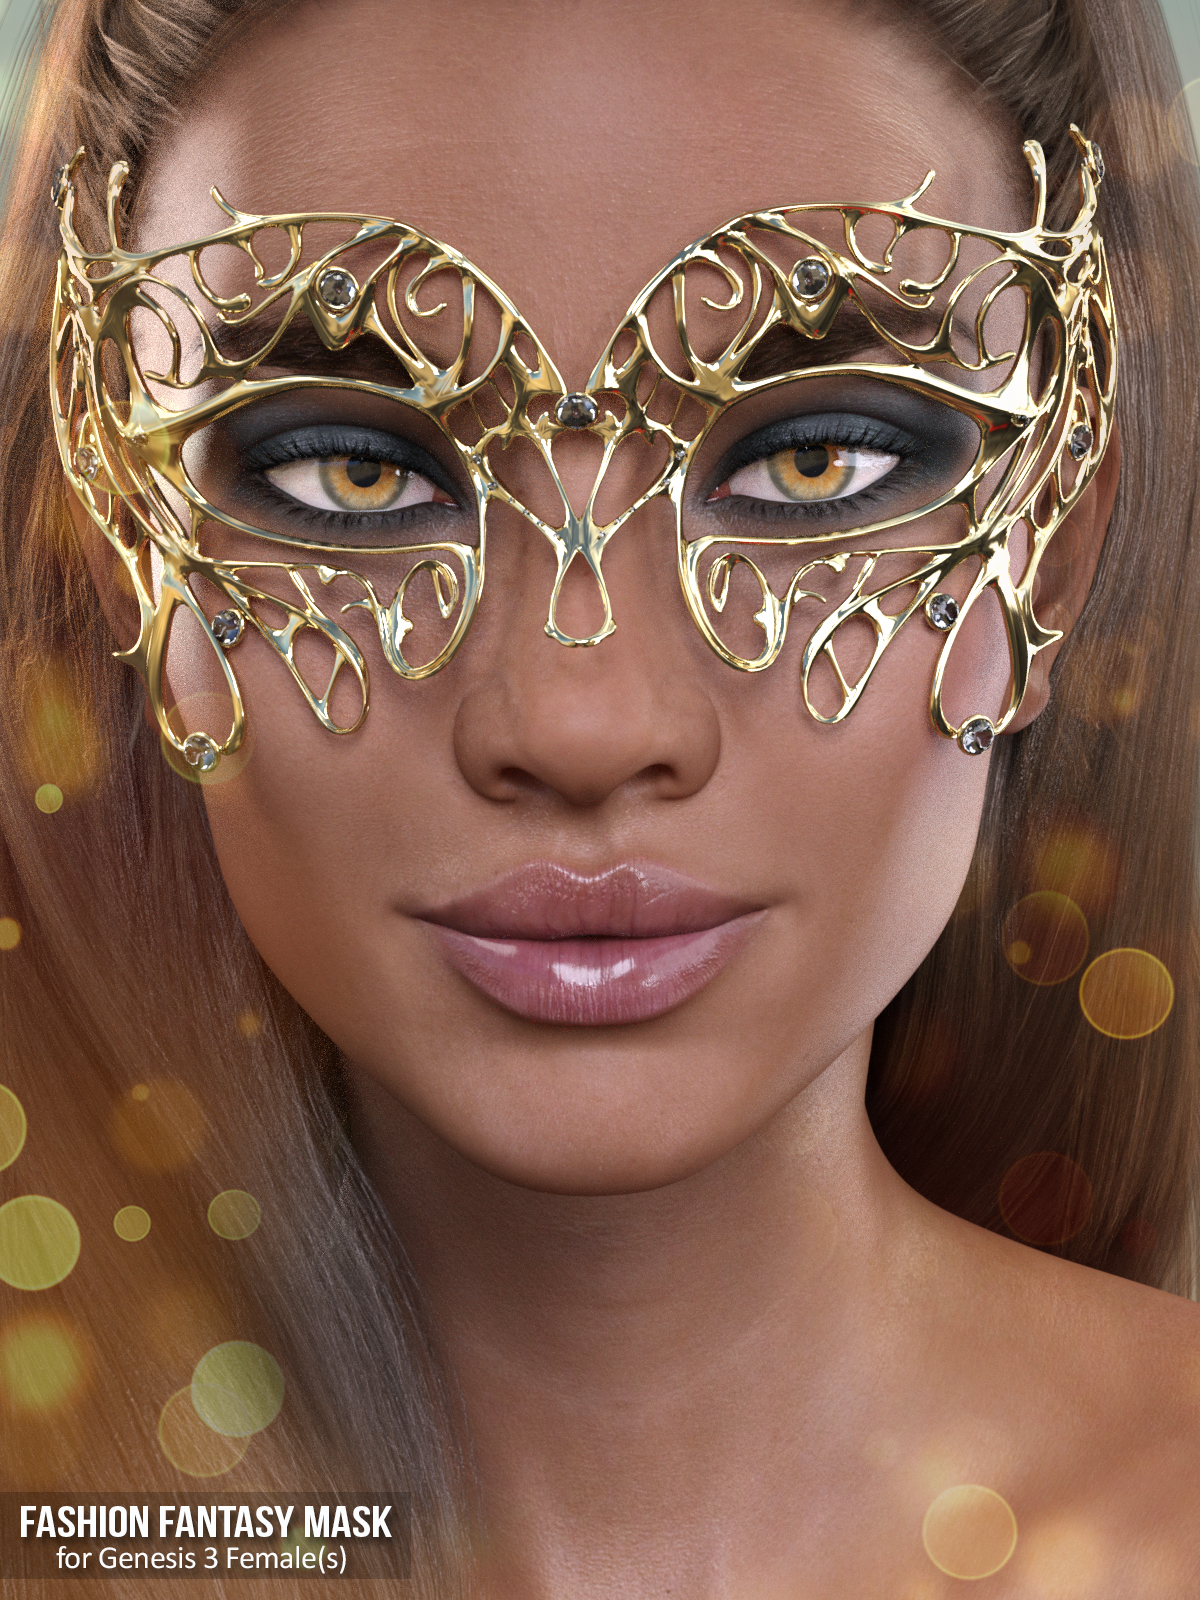 X-Fashion Fantasy Mask for Genesis 3 Females